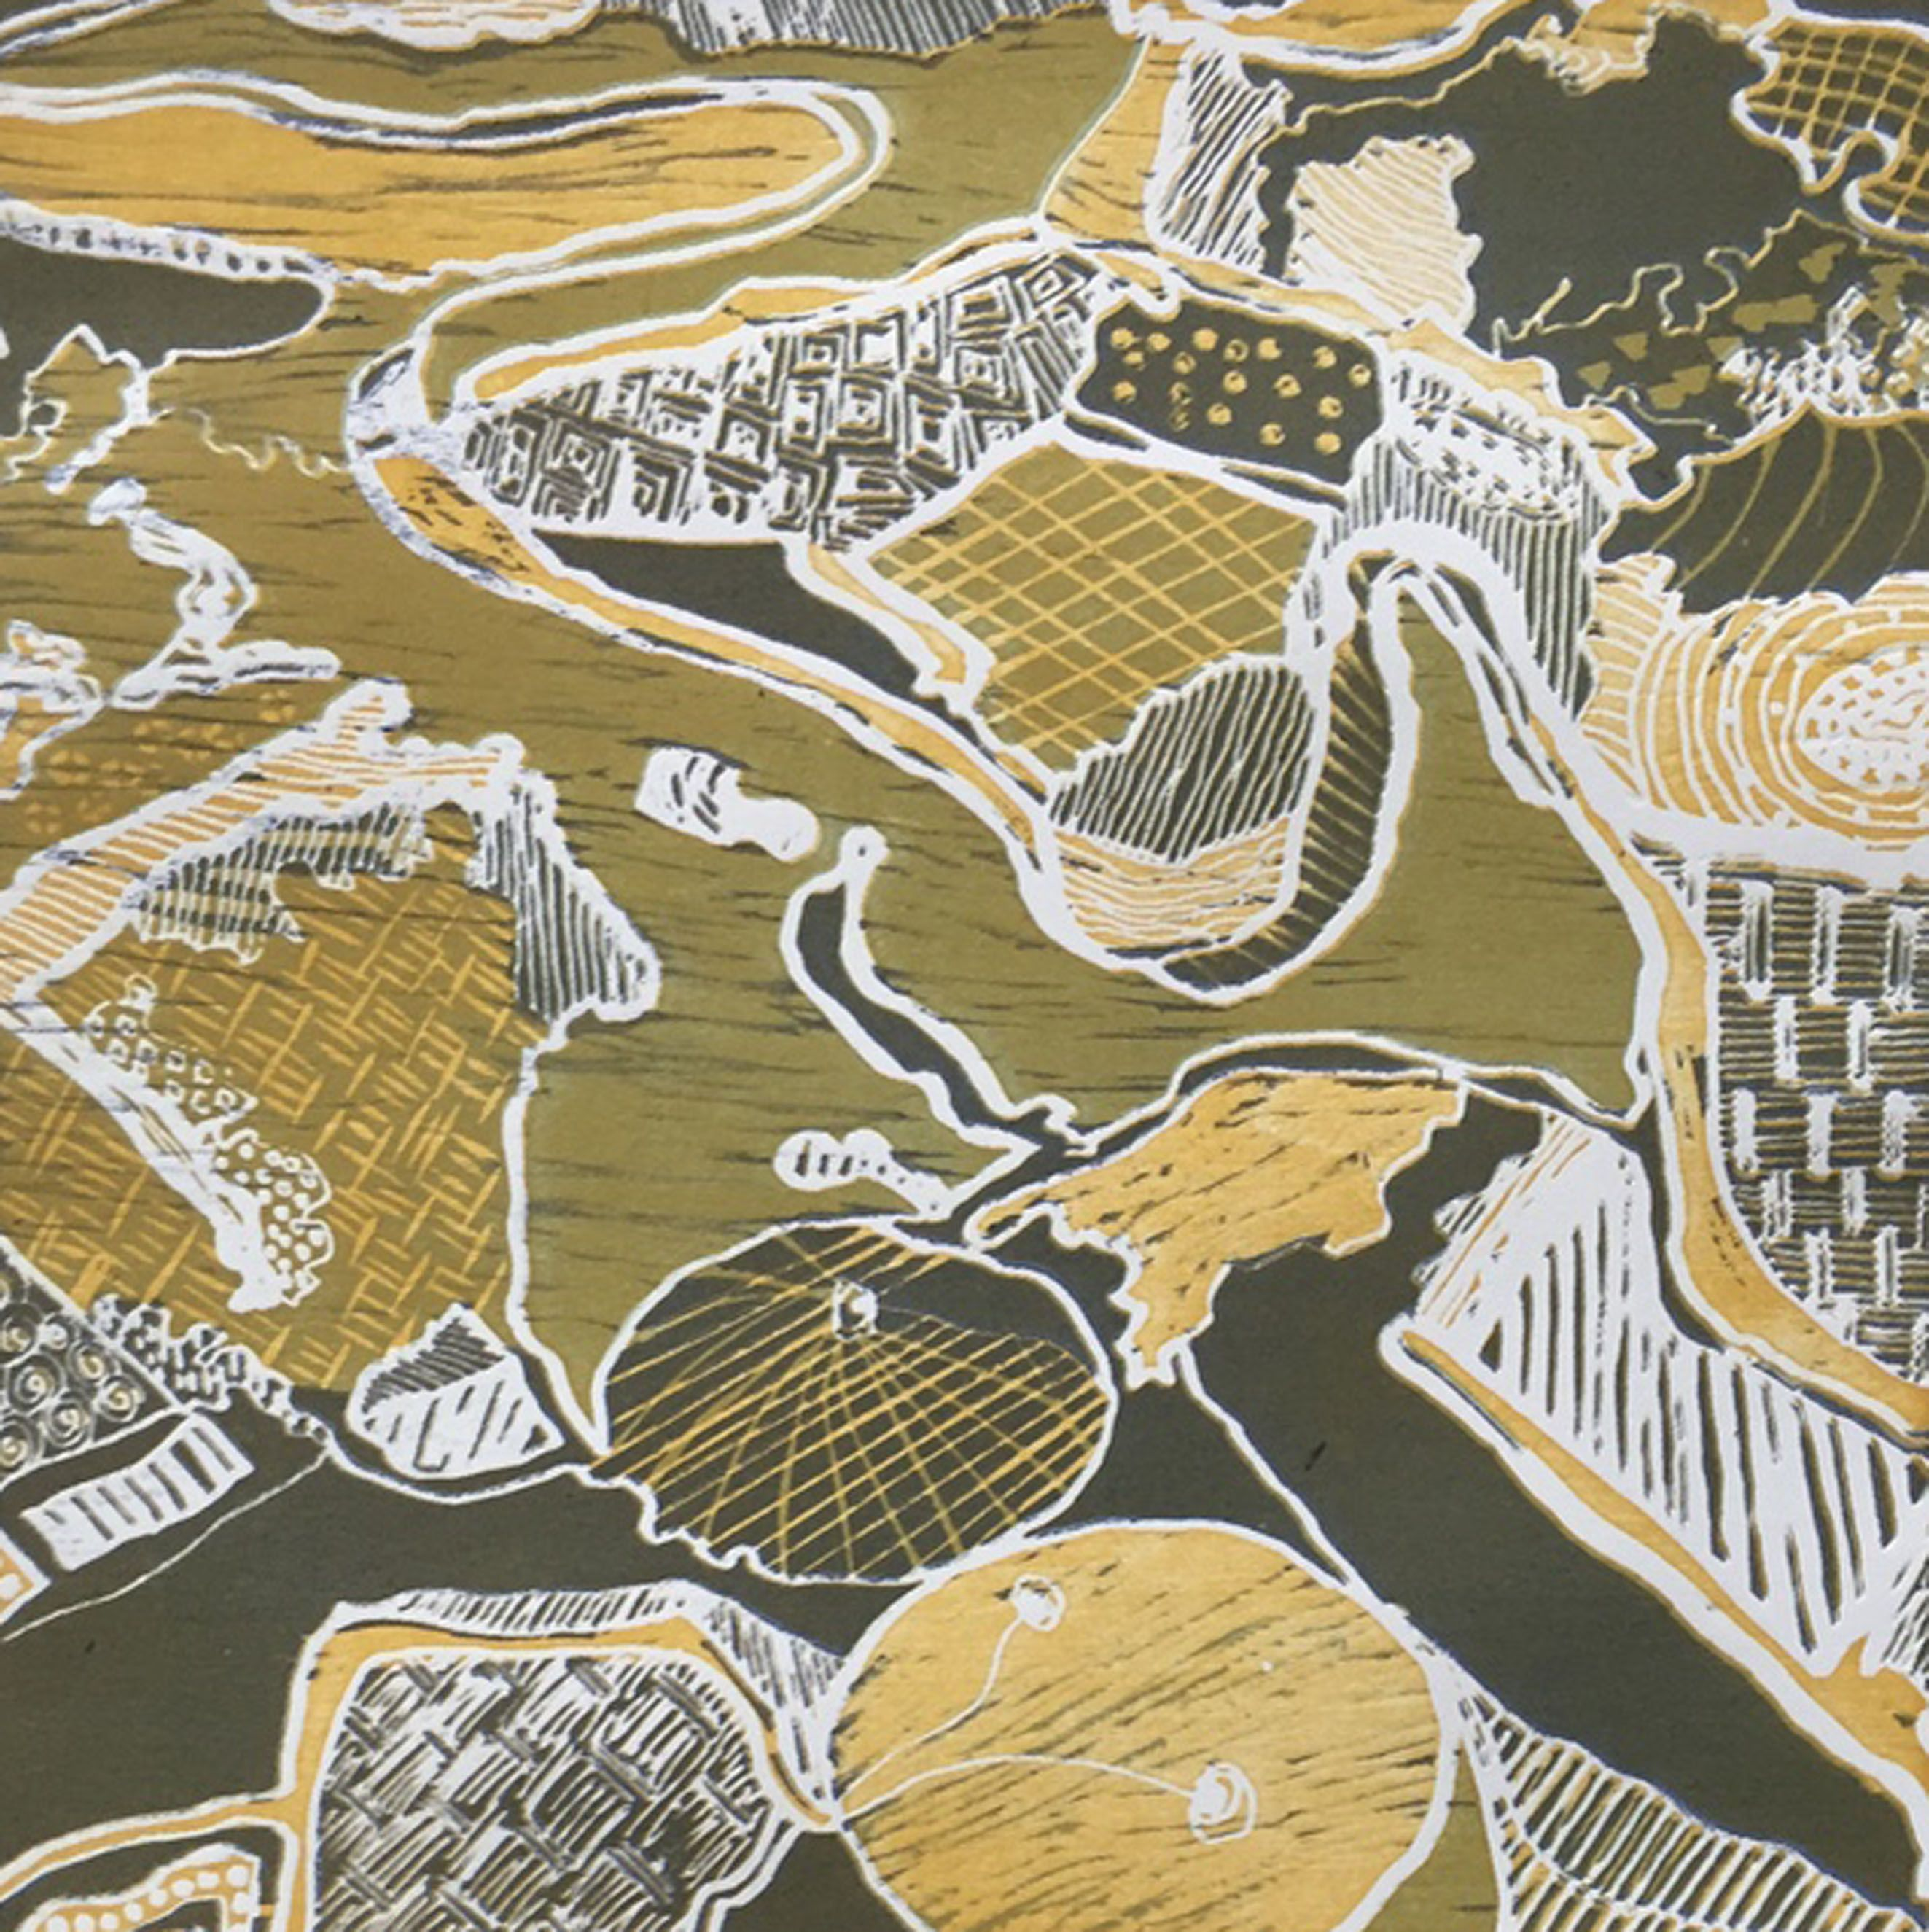 Anatolia A New 3 Color Woodblock Print That Is Based On An Aerial View I Took In Turkey